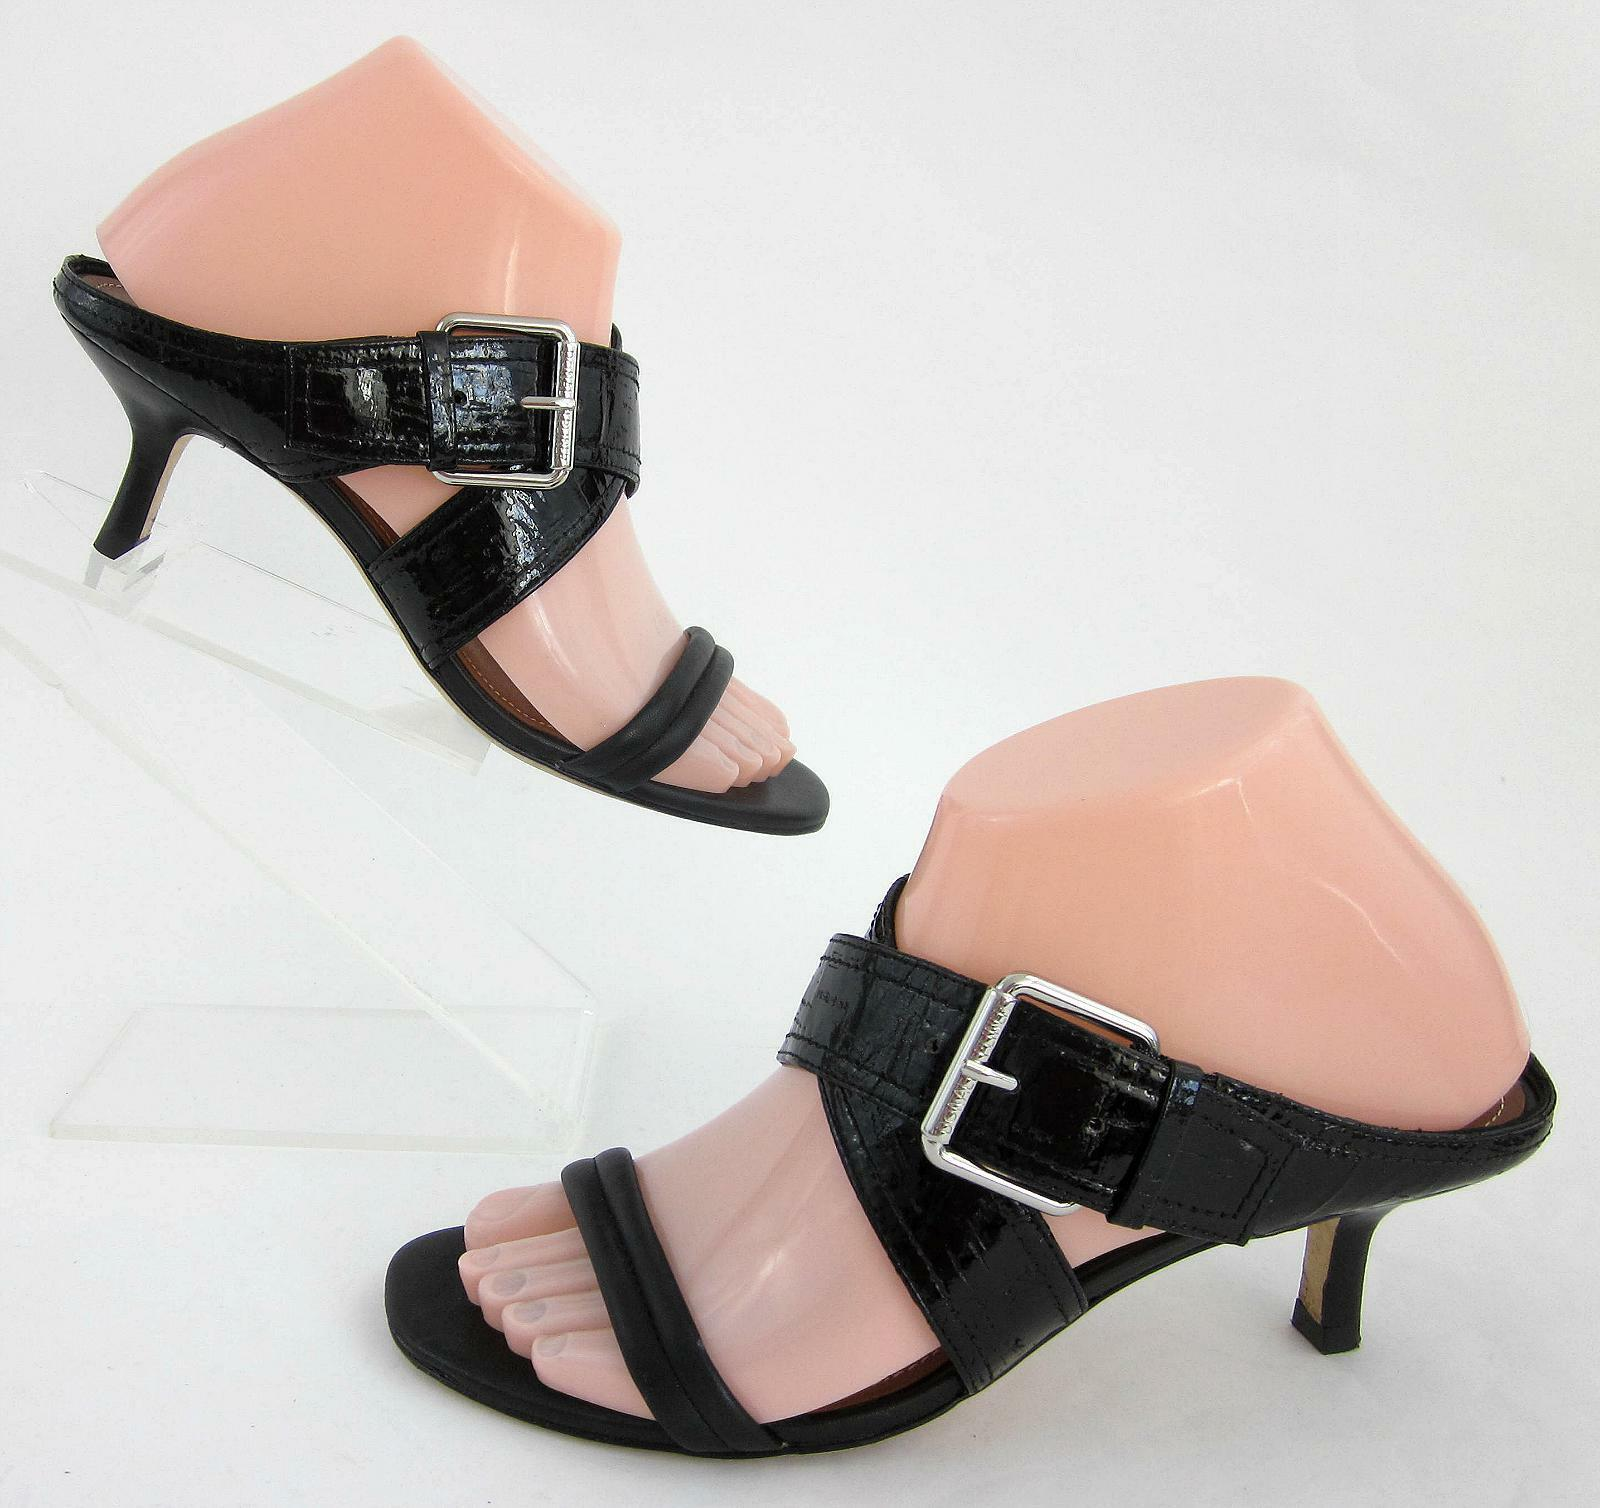 Donald J Pliner 'Mora' Criss Cross Open Toe Kitten Heel Sandals Black Leather 7M